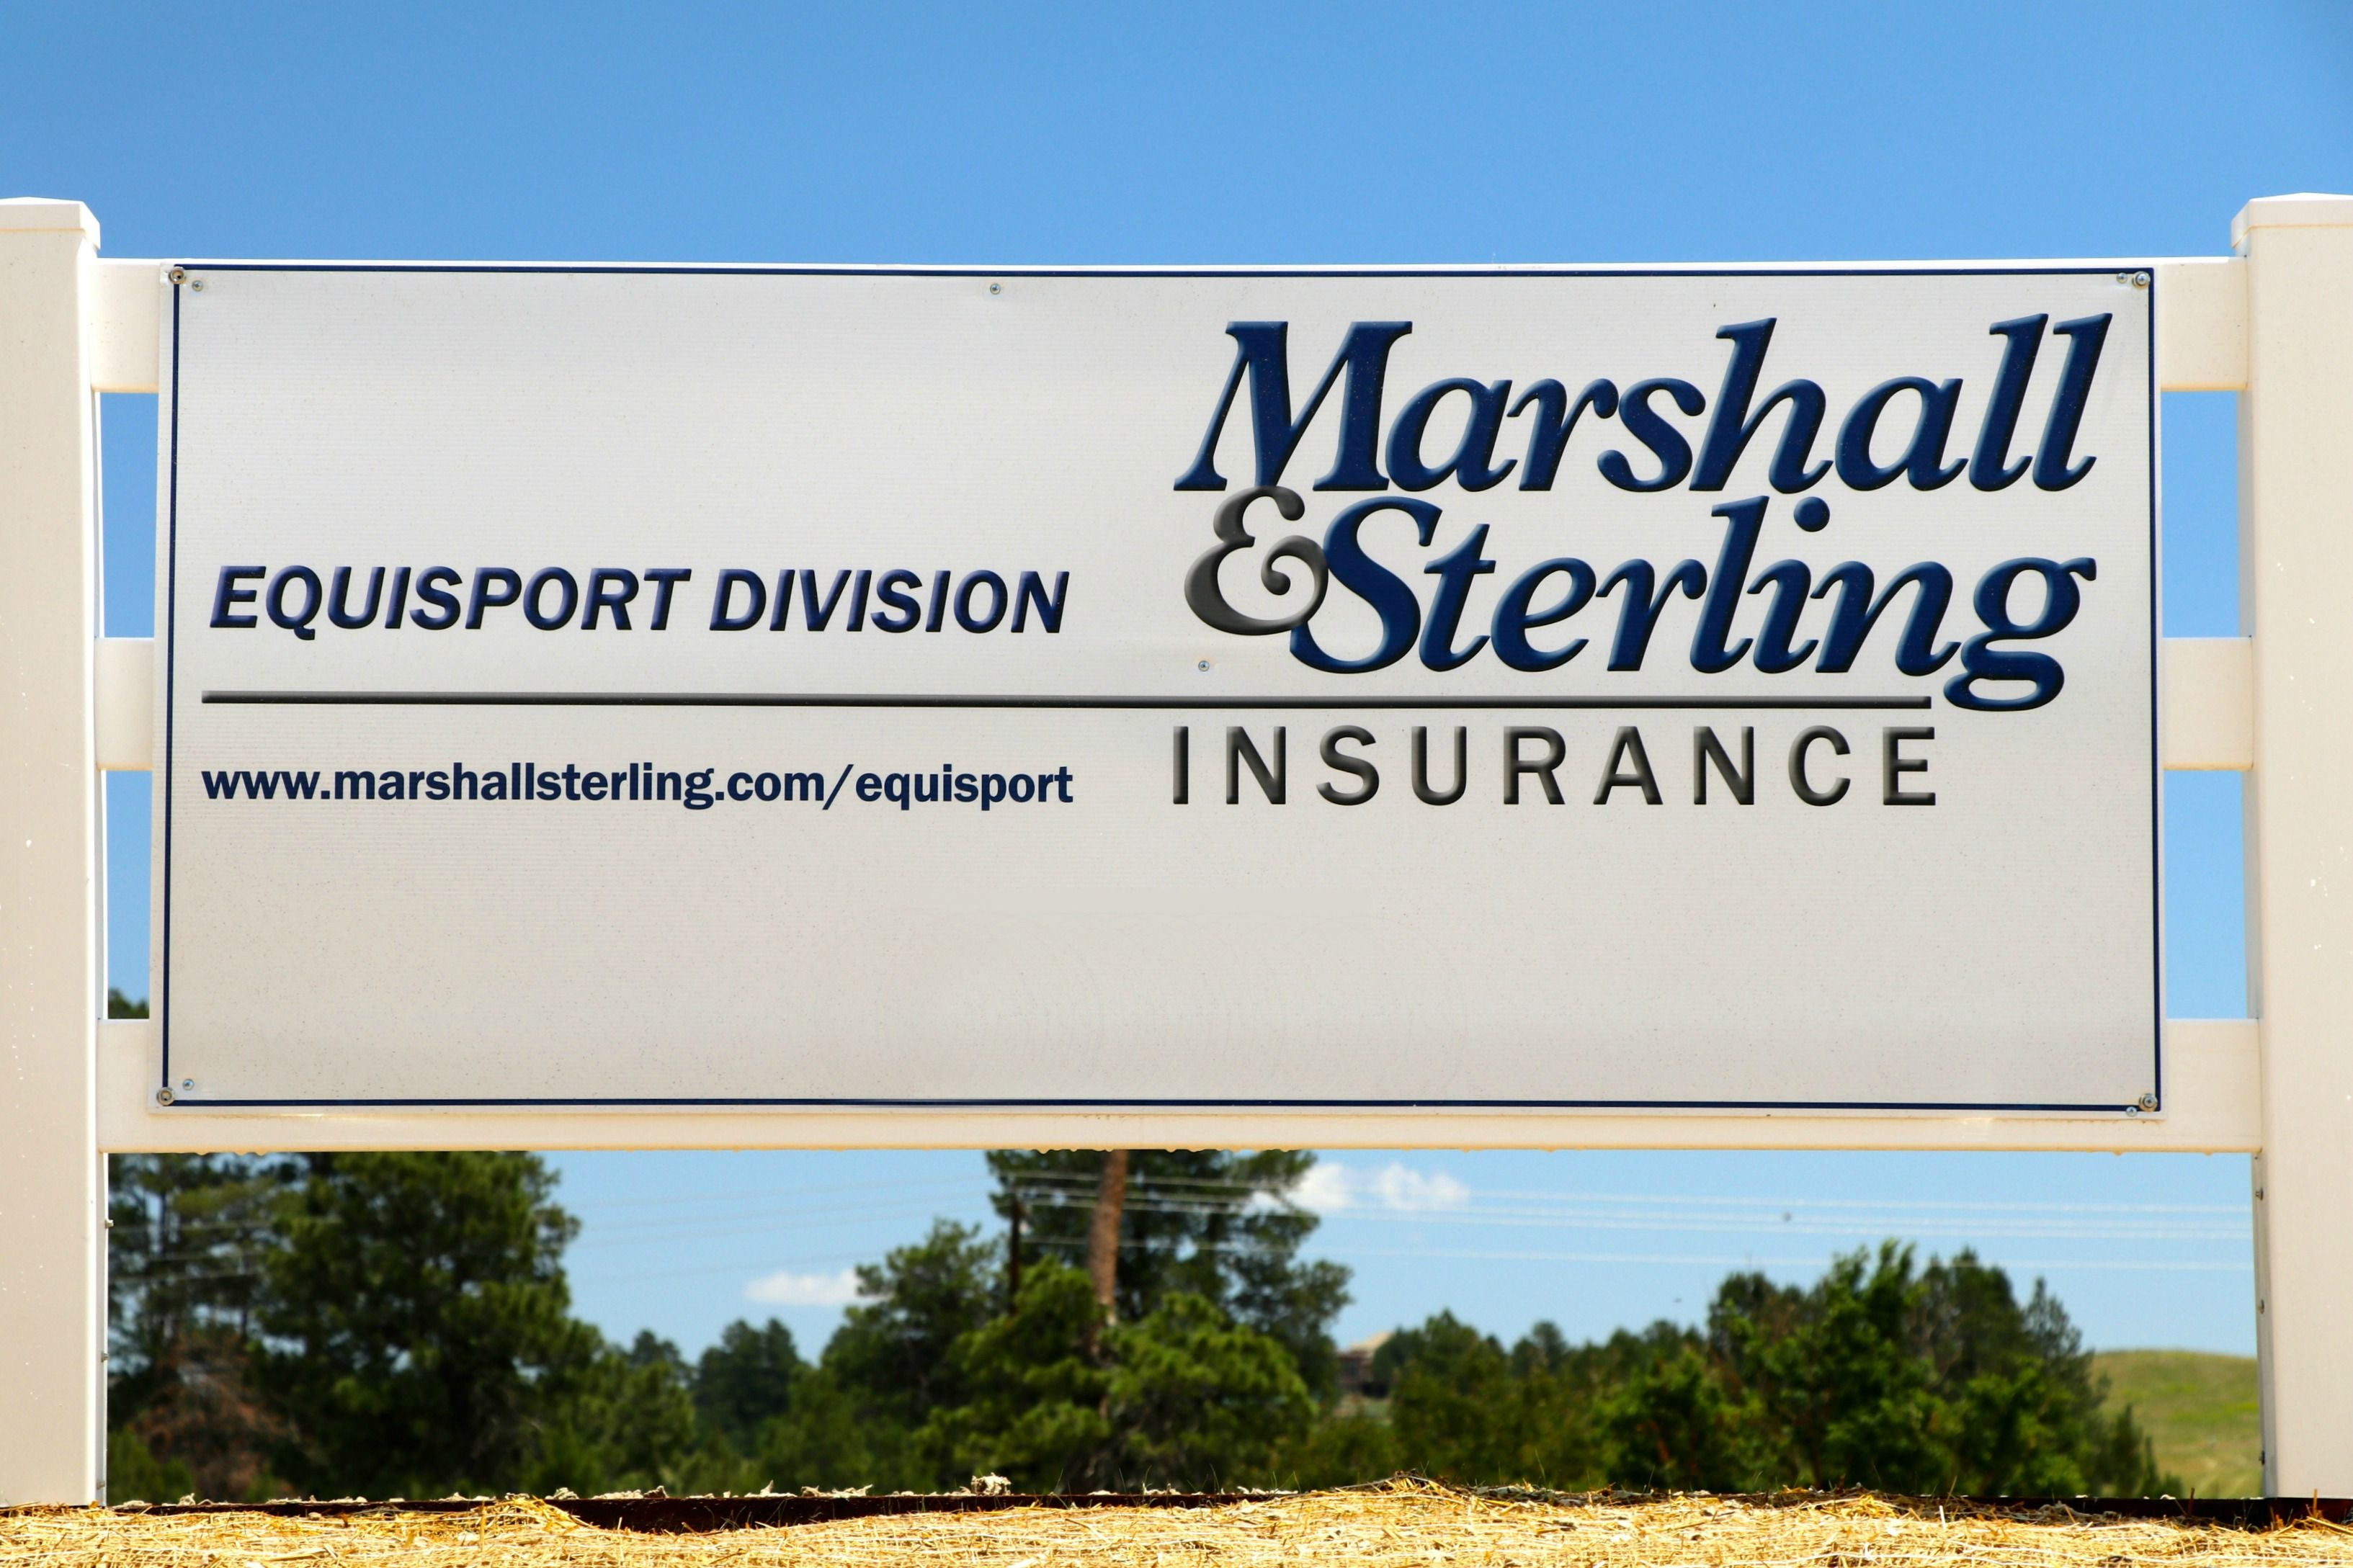 Marshall & Sterling Insurance specializes in personalized